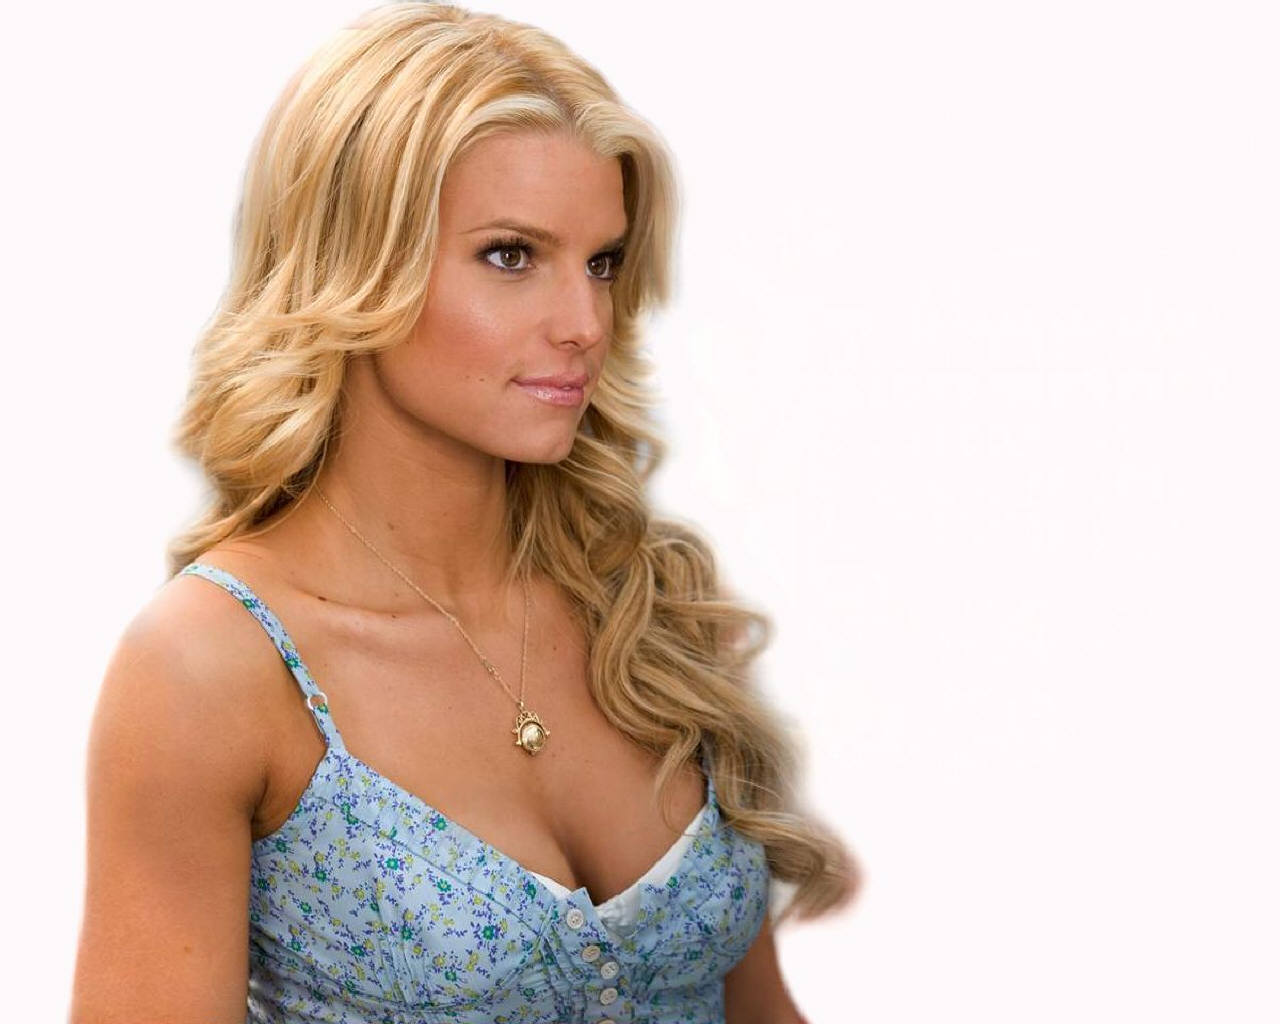 Jessica Simpson images Jessica Simpson wallpaper photos 151232 1280x1024